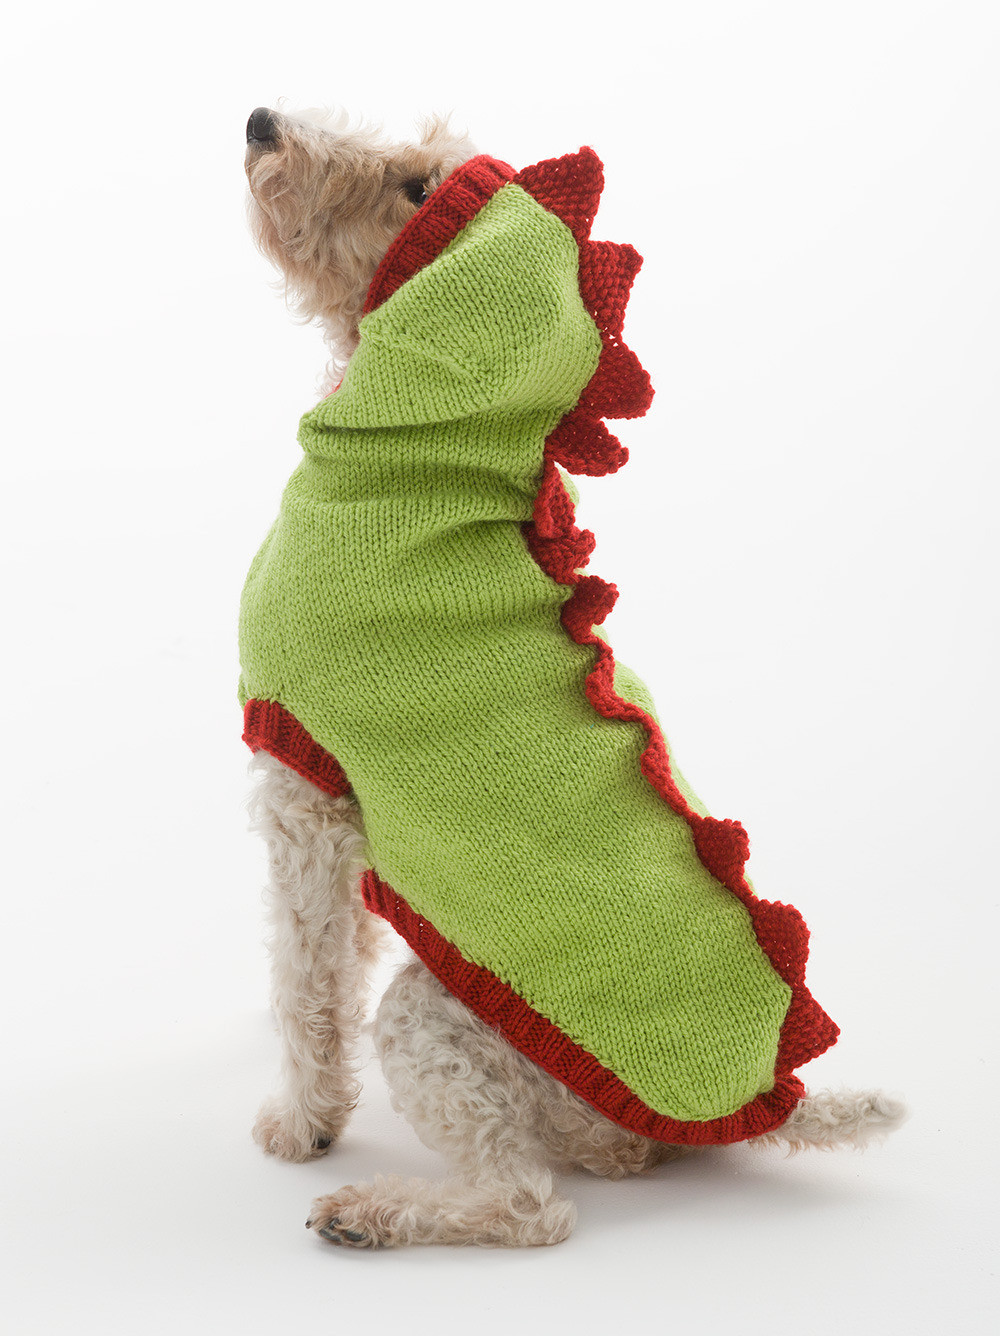 Best Of Dragon Slayer Dog Sweater In Lion Brand Wool Ease L Dog Knitting Patterns Free Of Superb 44 Pictures Dog Knitting Patterns Free